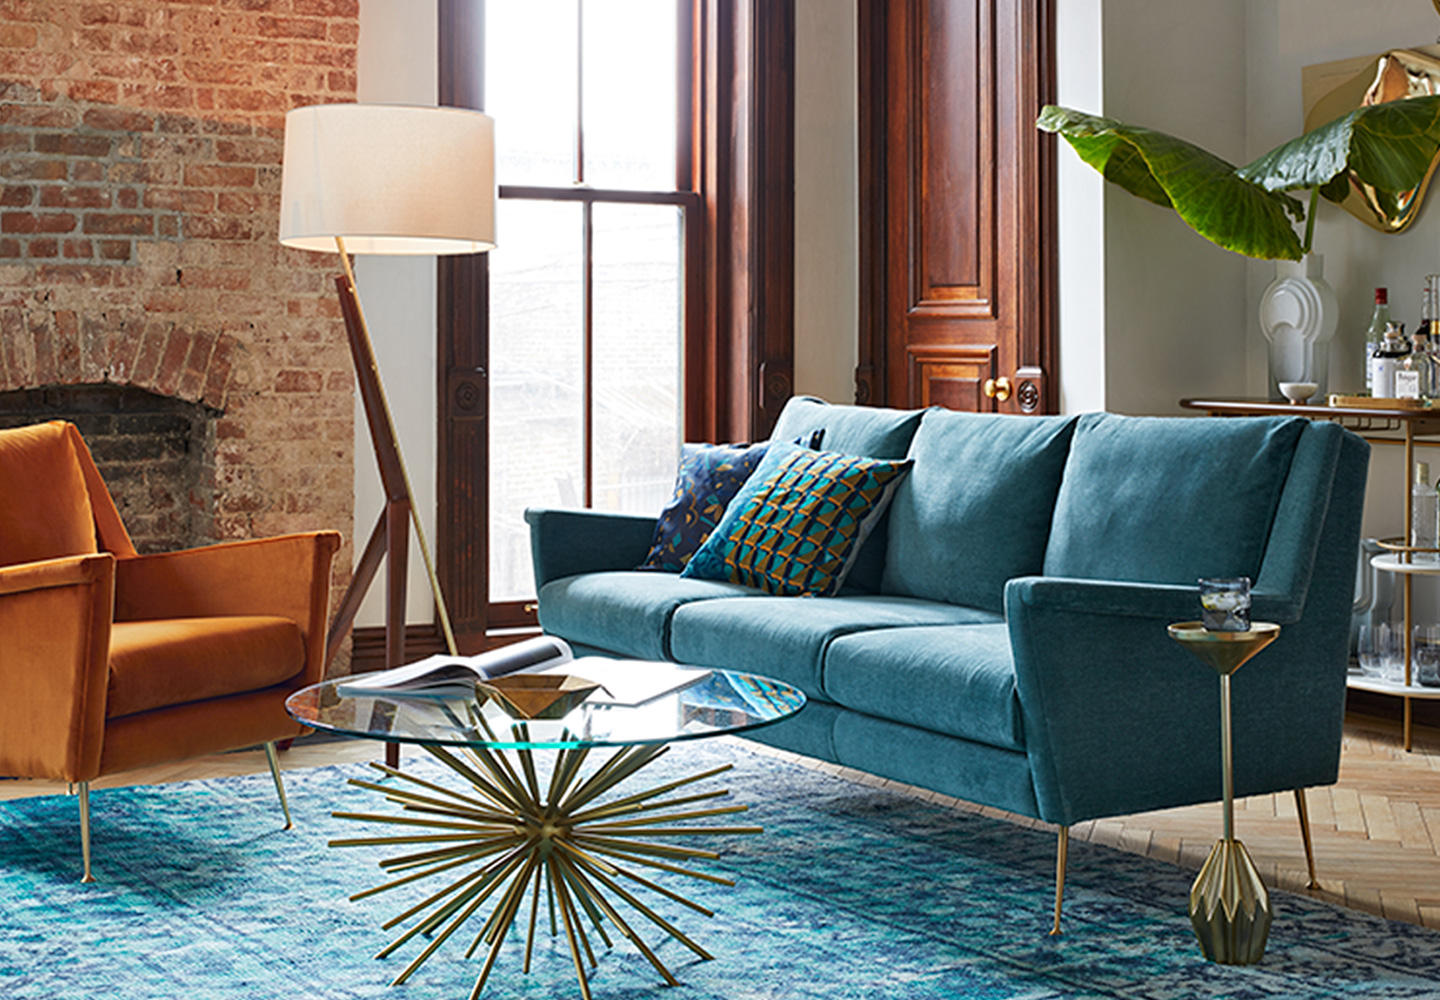 west elm living rooms room courtains shop brands online in store at arnotts